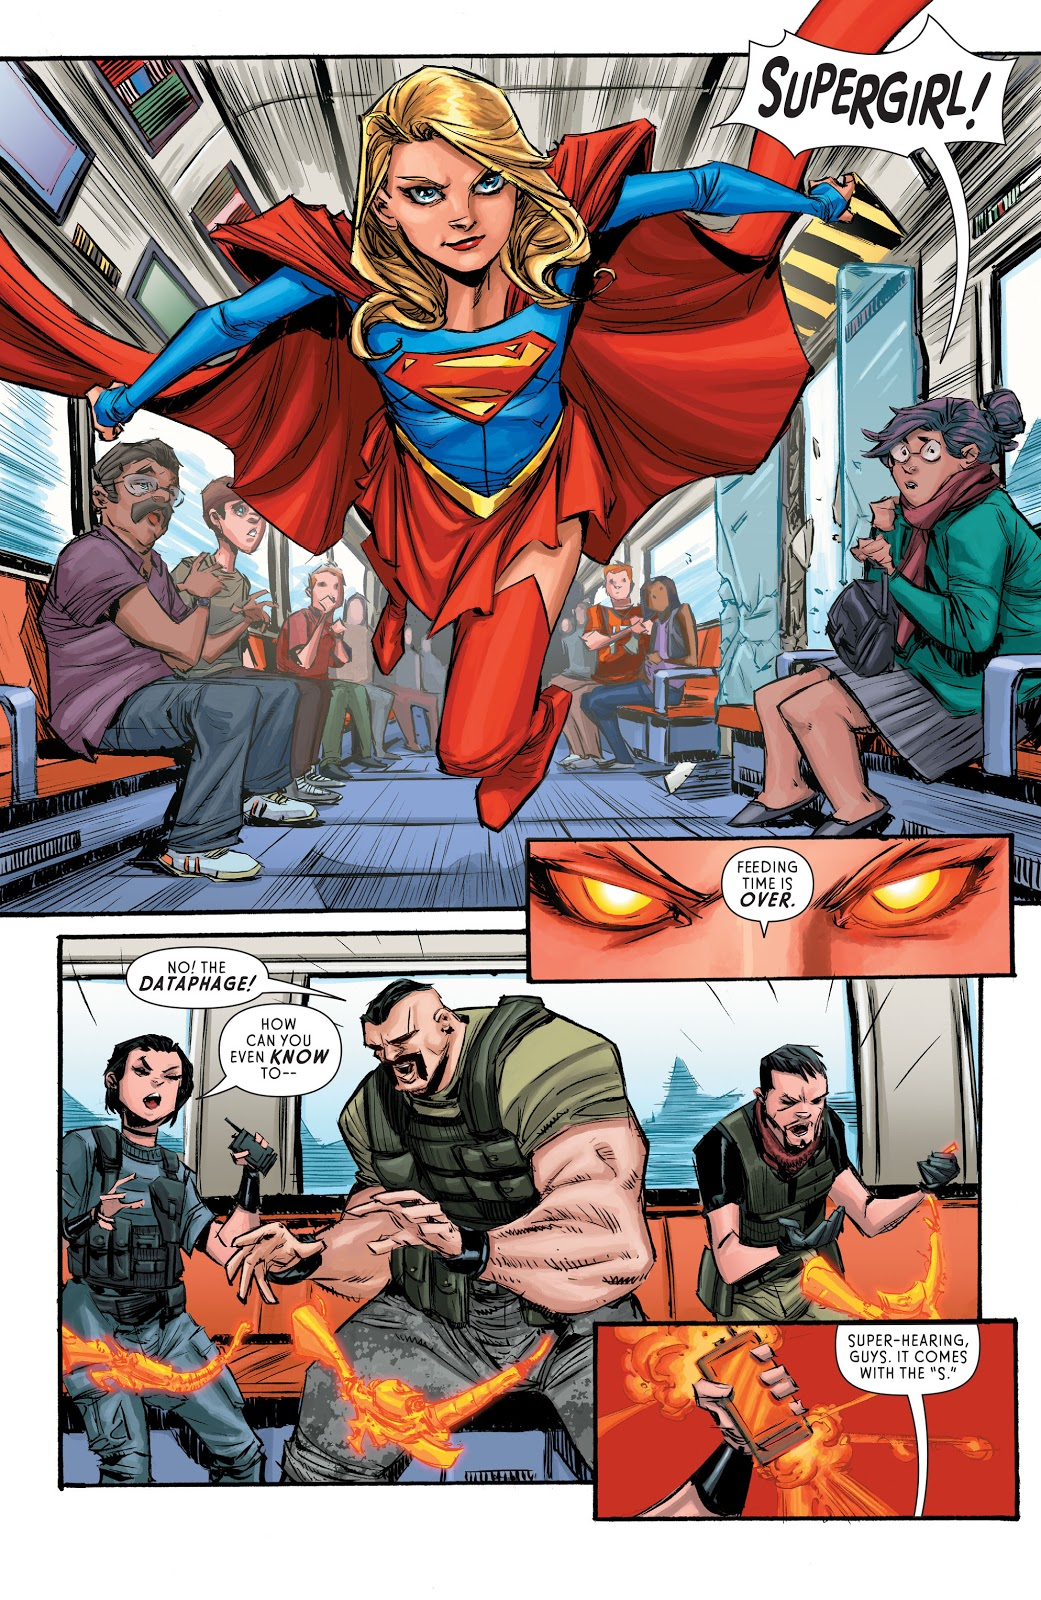 Supergirl Reign of the Cyborg Supermen review